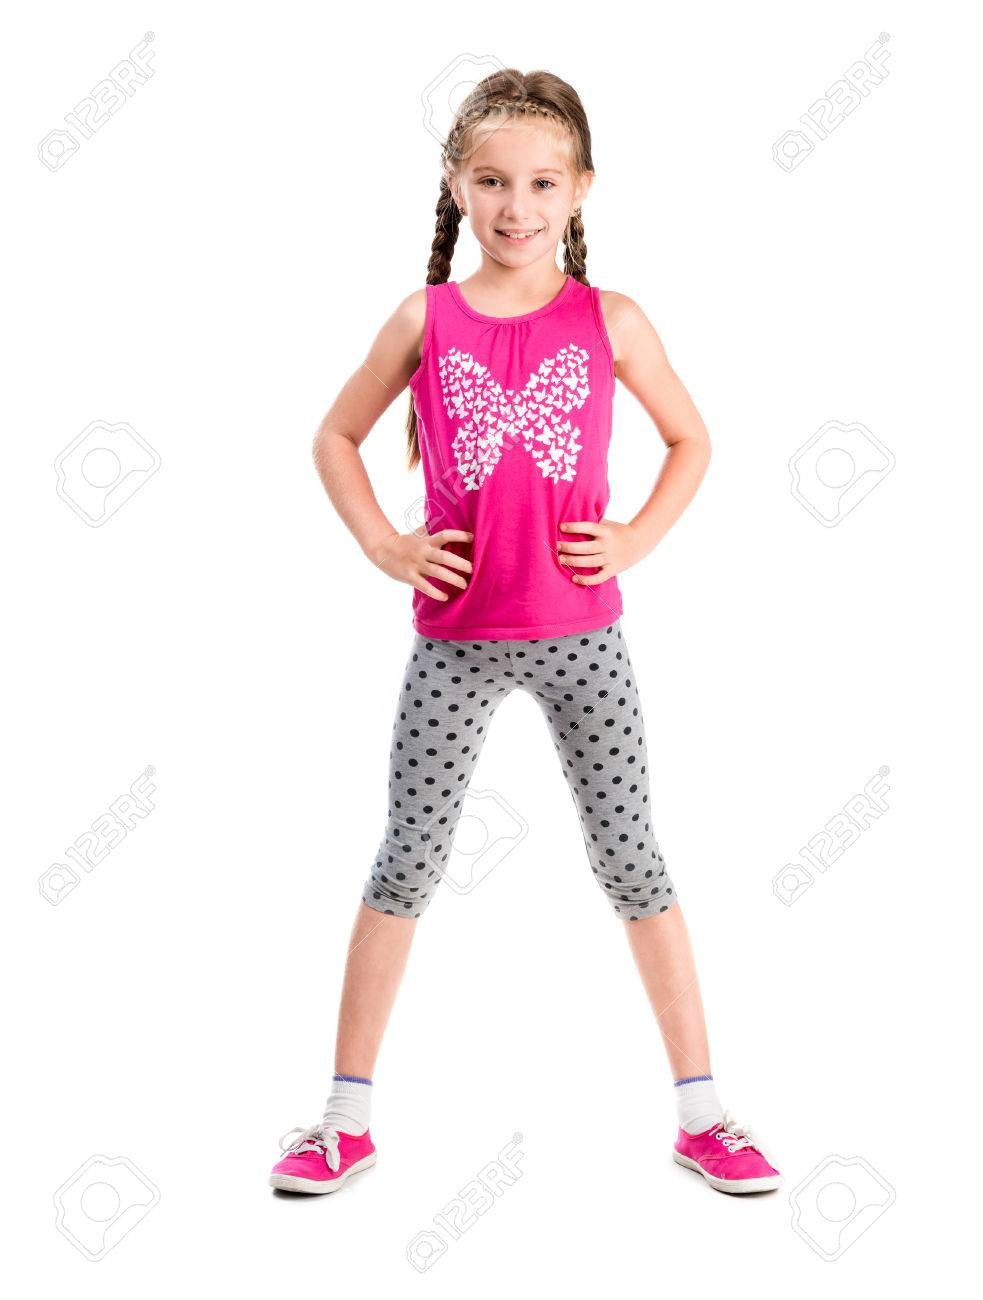 little girl standing with hands on sides doing fitness - 44481637